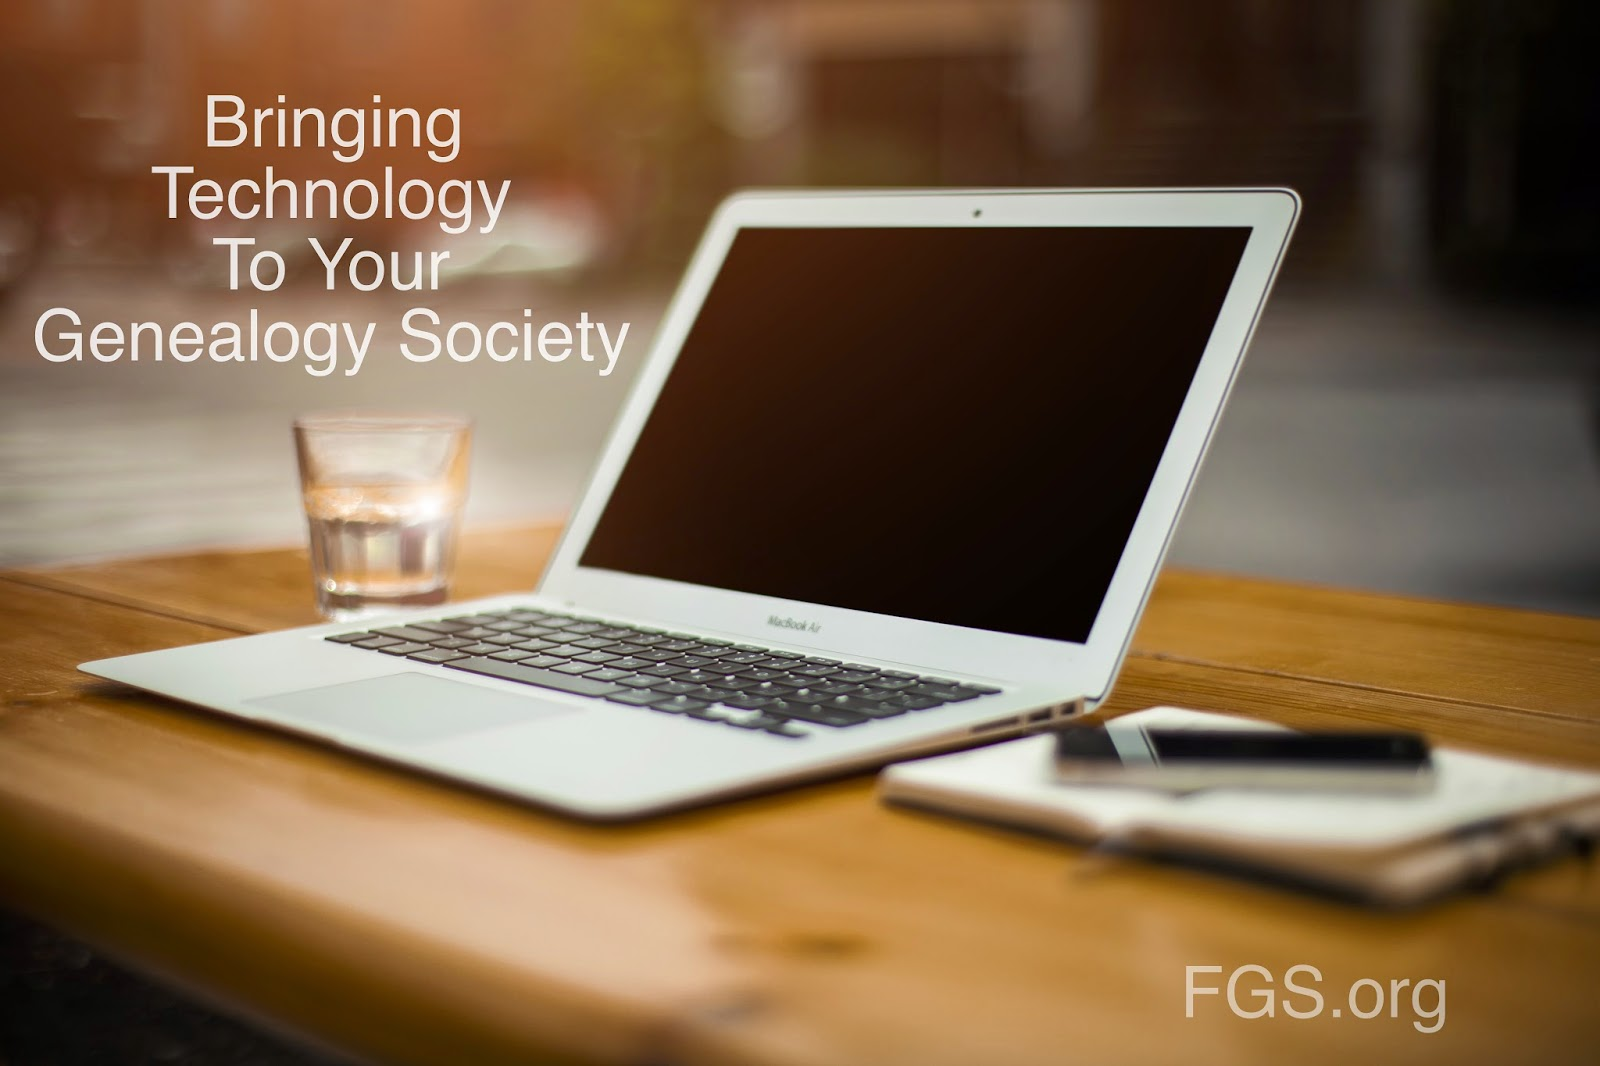 Bringing Technology to Your Genealogy Society from FGS.org